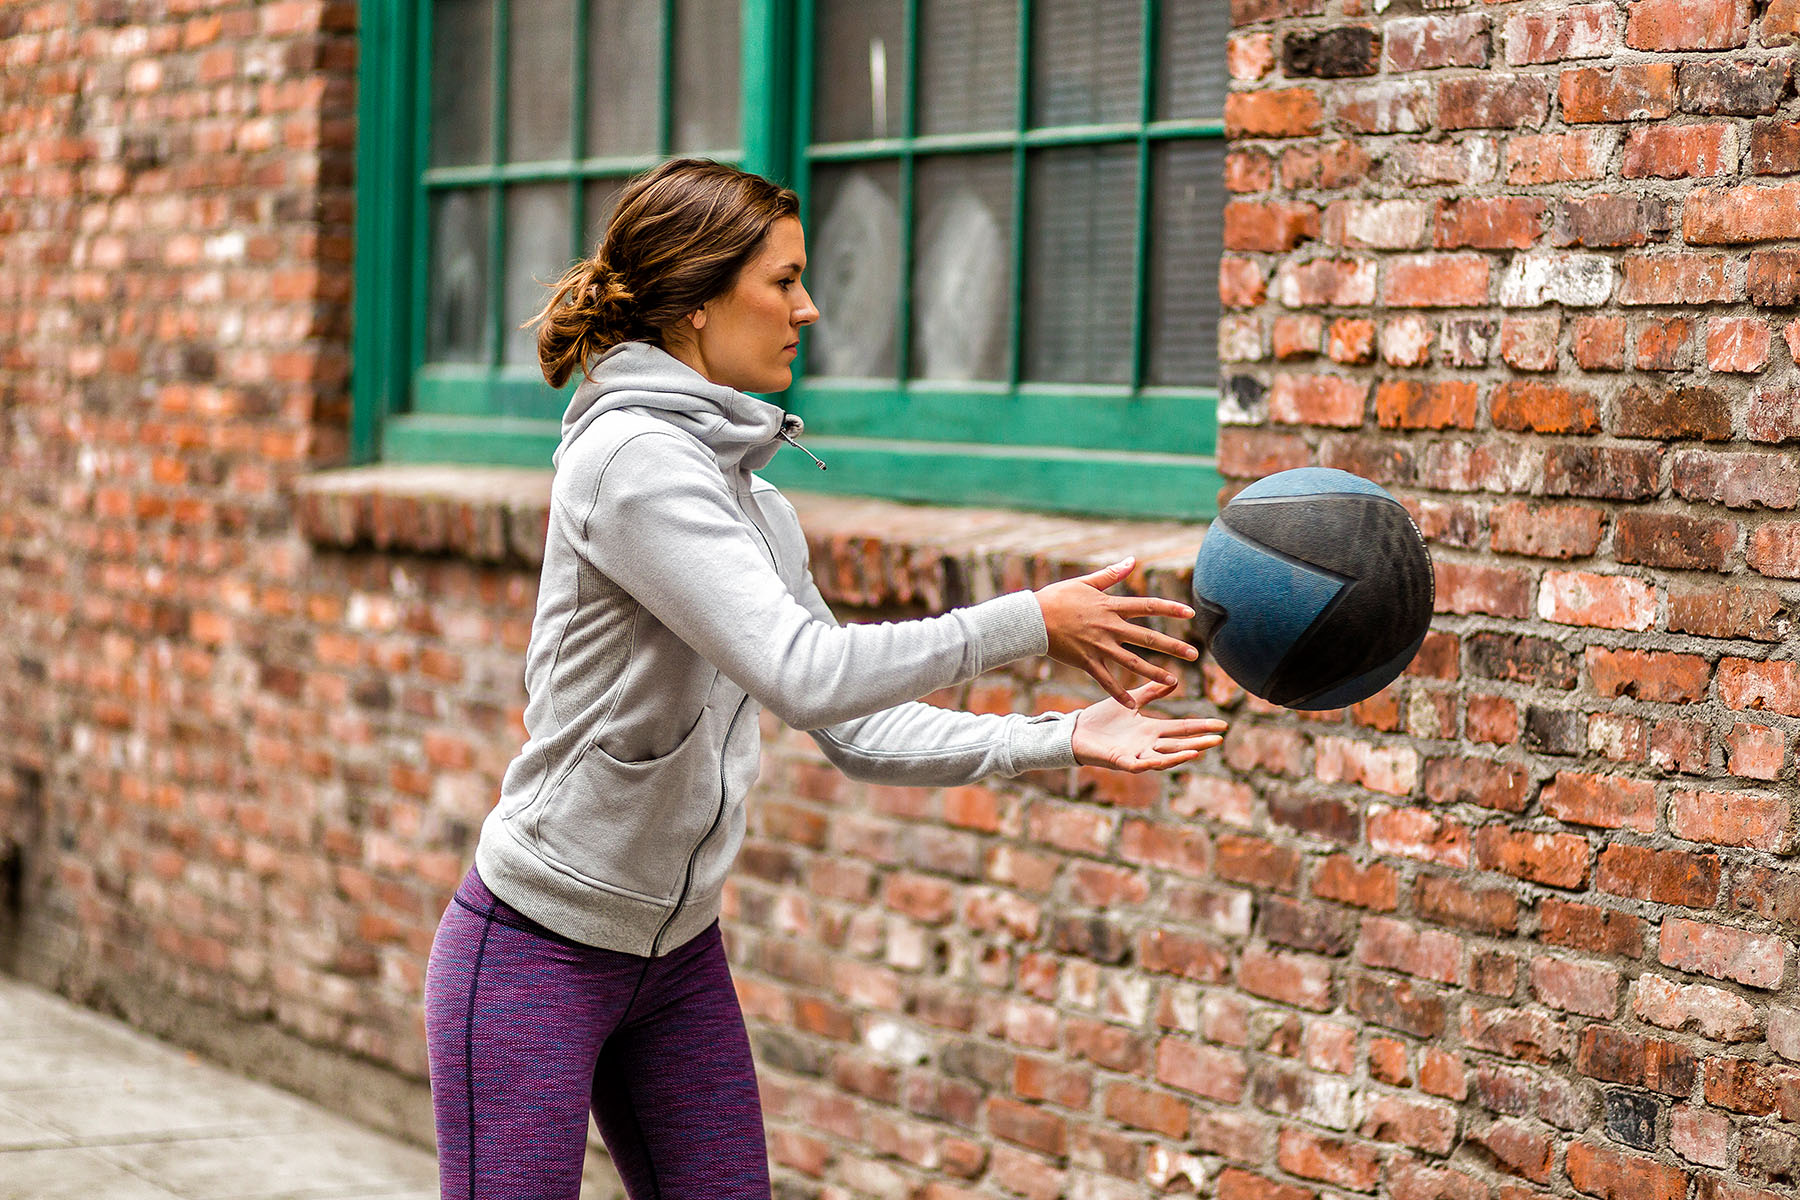 Fitness: Mary Little exercising with a medicine ball in an urban setting, Seattle, Washington